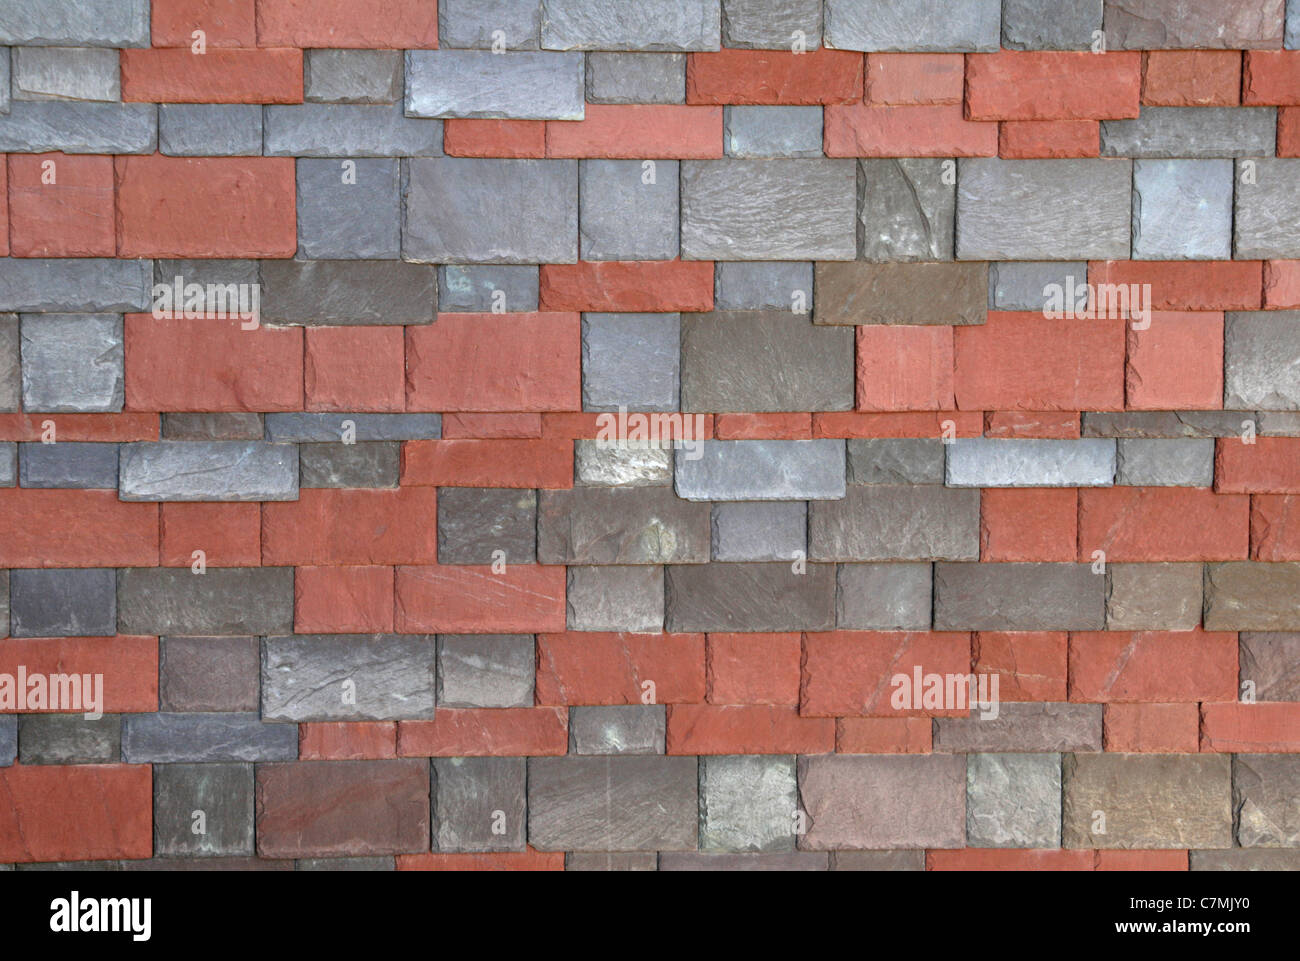 Shingles Stock Photos Amp Shingles Stock Images Alamy